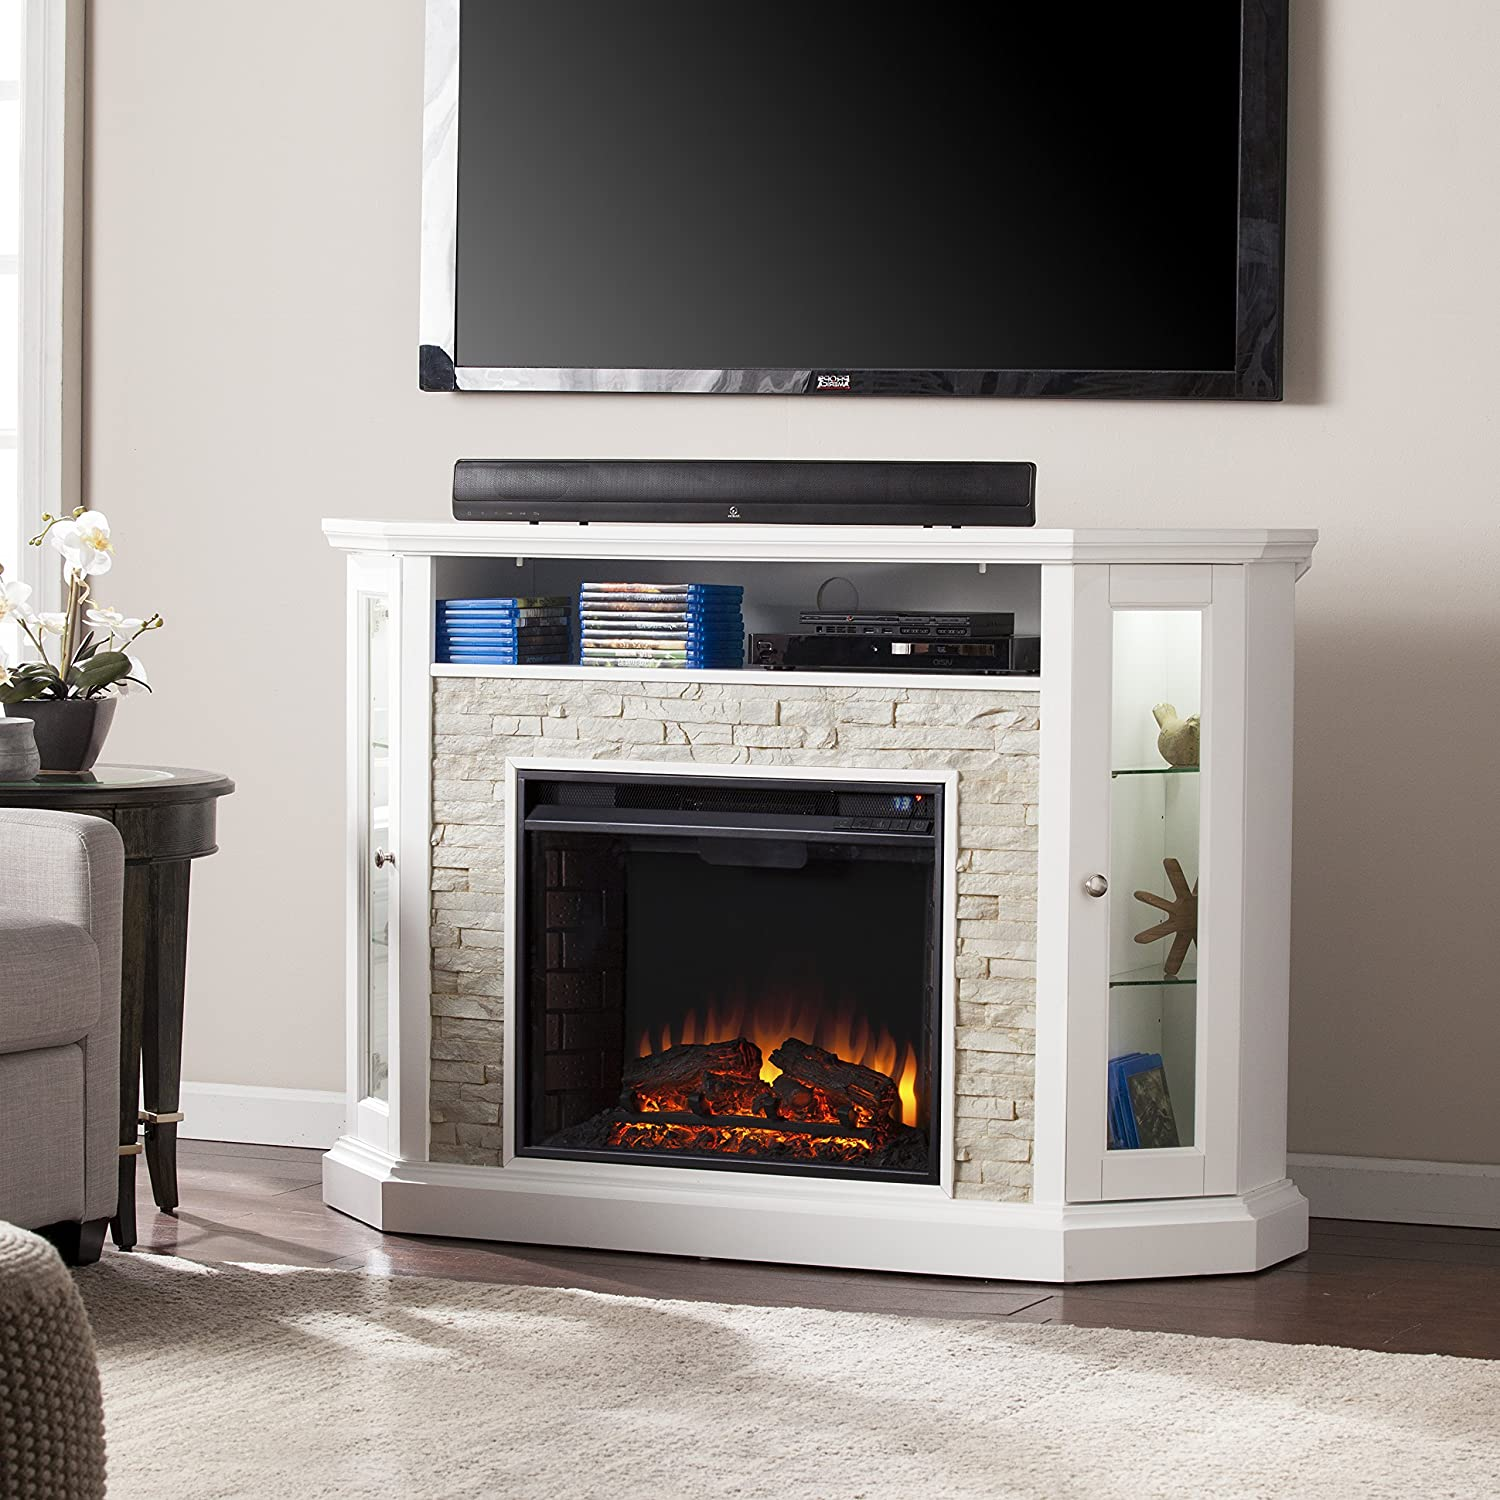 Southern Enterprises Rollins Convertible Corner Electric Media Fireplace 52 Wide, White Finish with Faux Stone